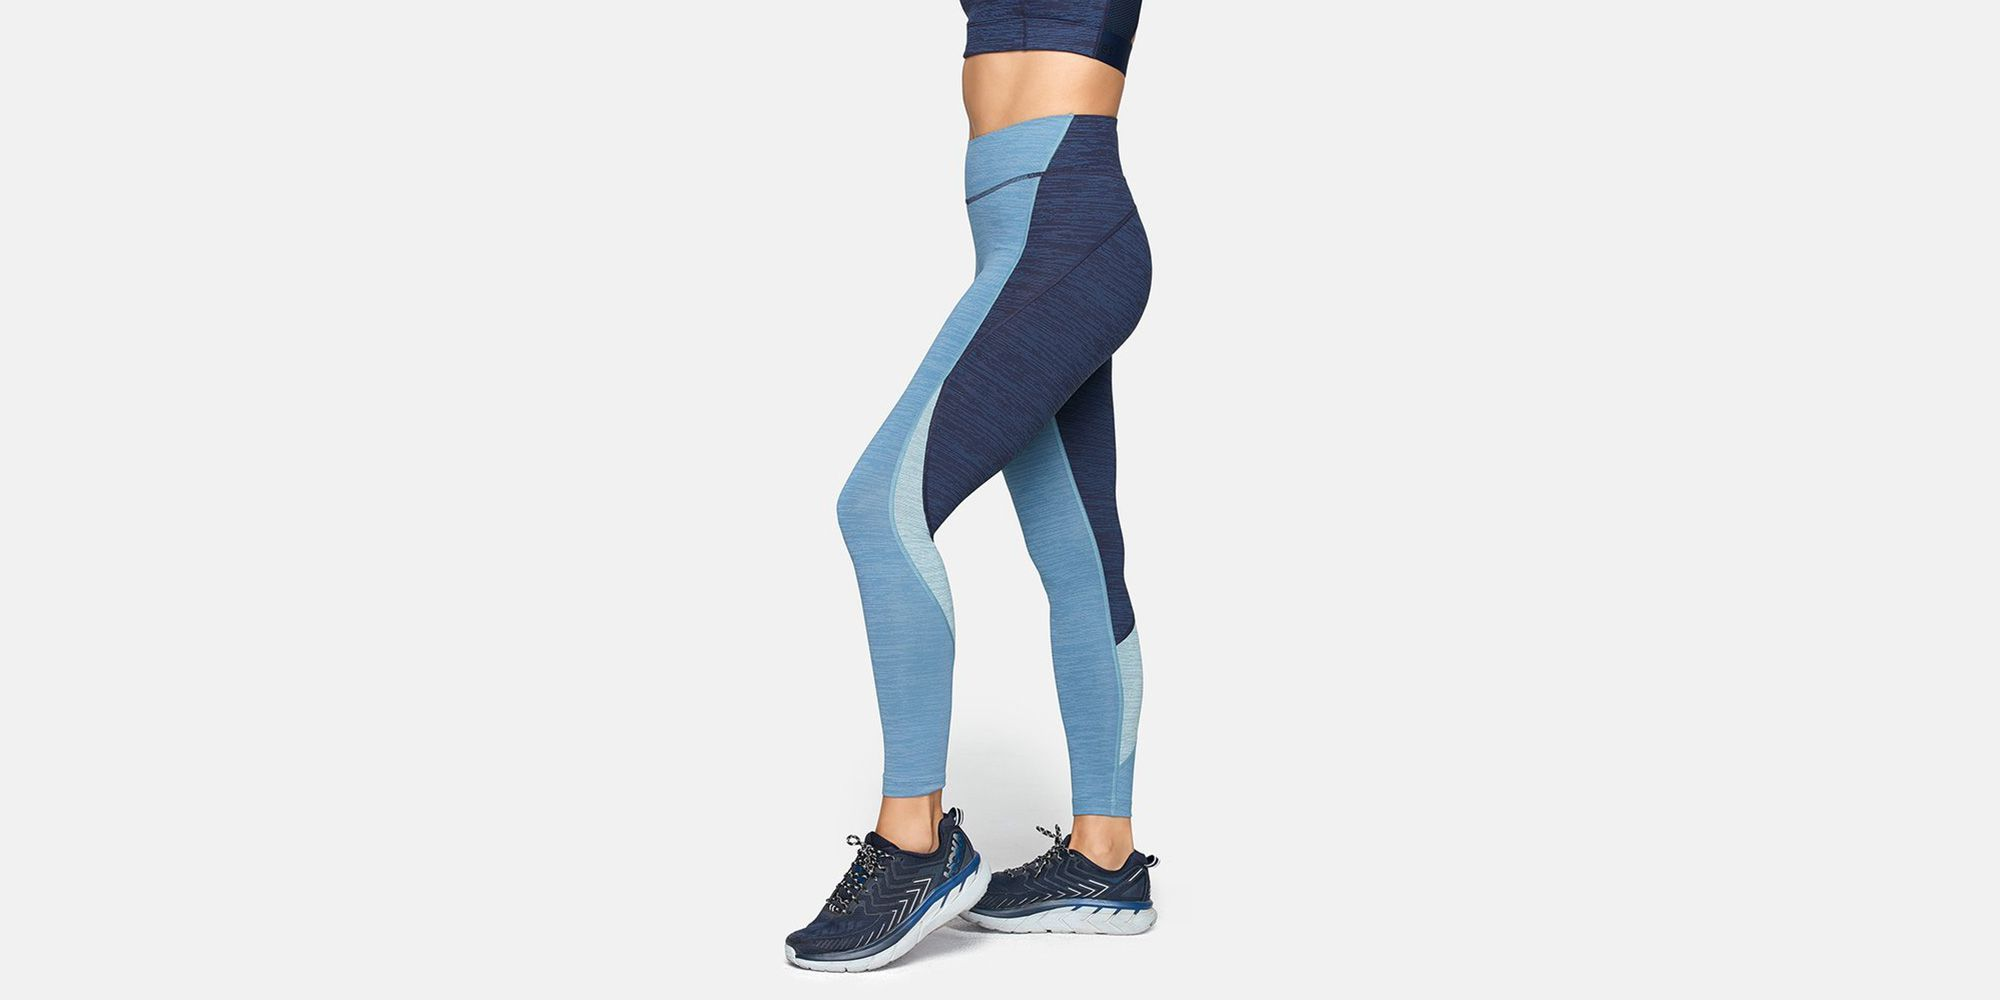 0c700ca20c529 Best Leggings With Pockets - Workout Leggings With Pockets